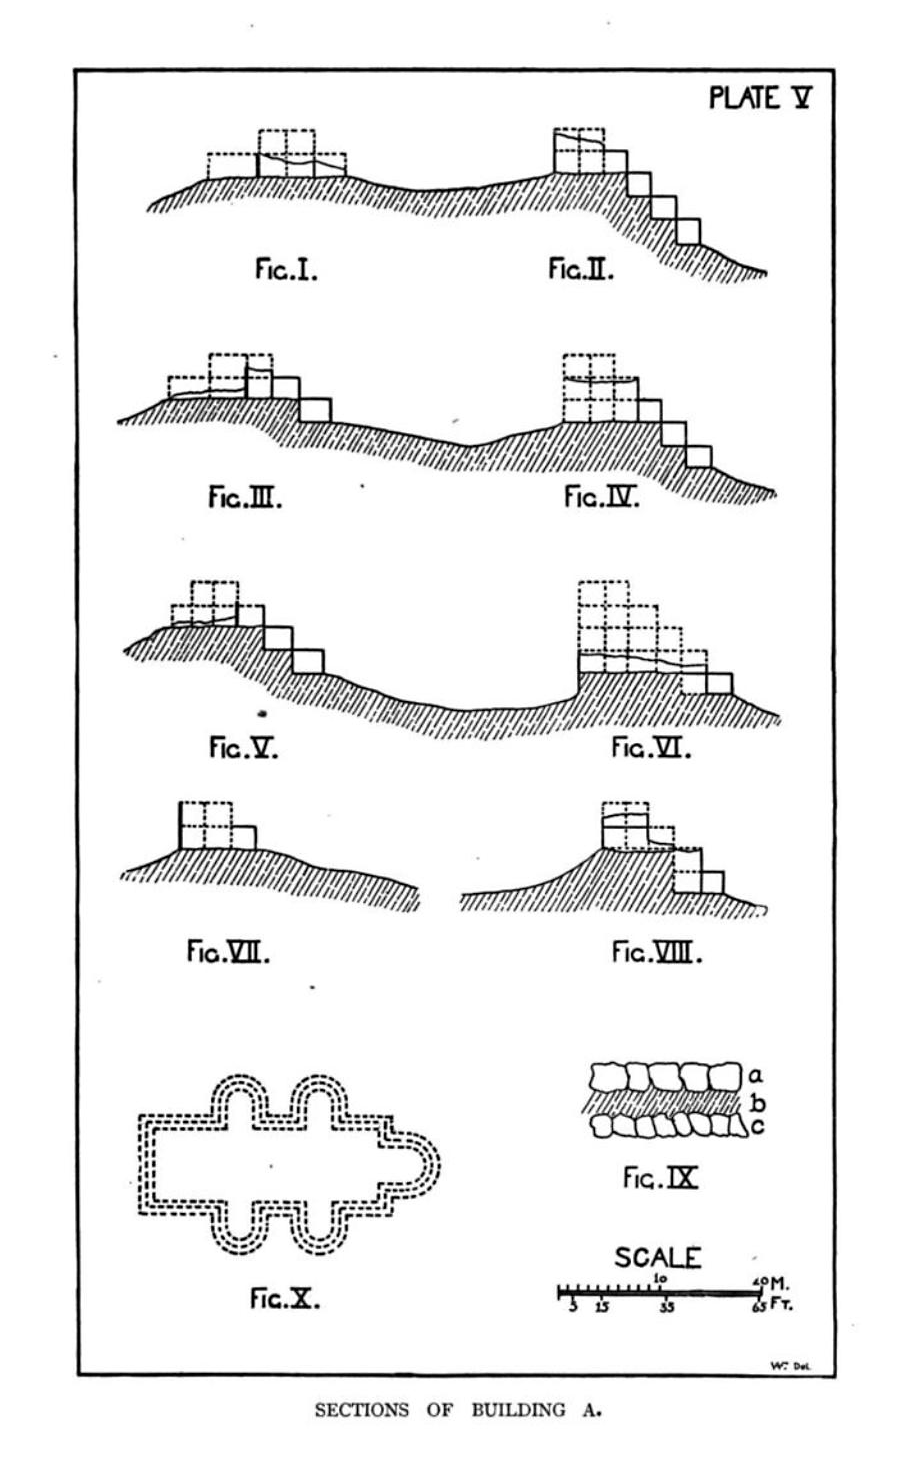 The project gutenberg ebook of historical introduction to studies plate v sections of building a fandeluxe Images